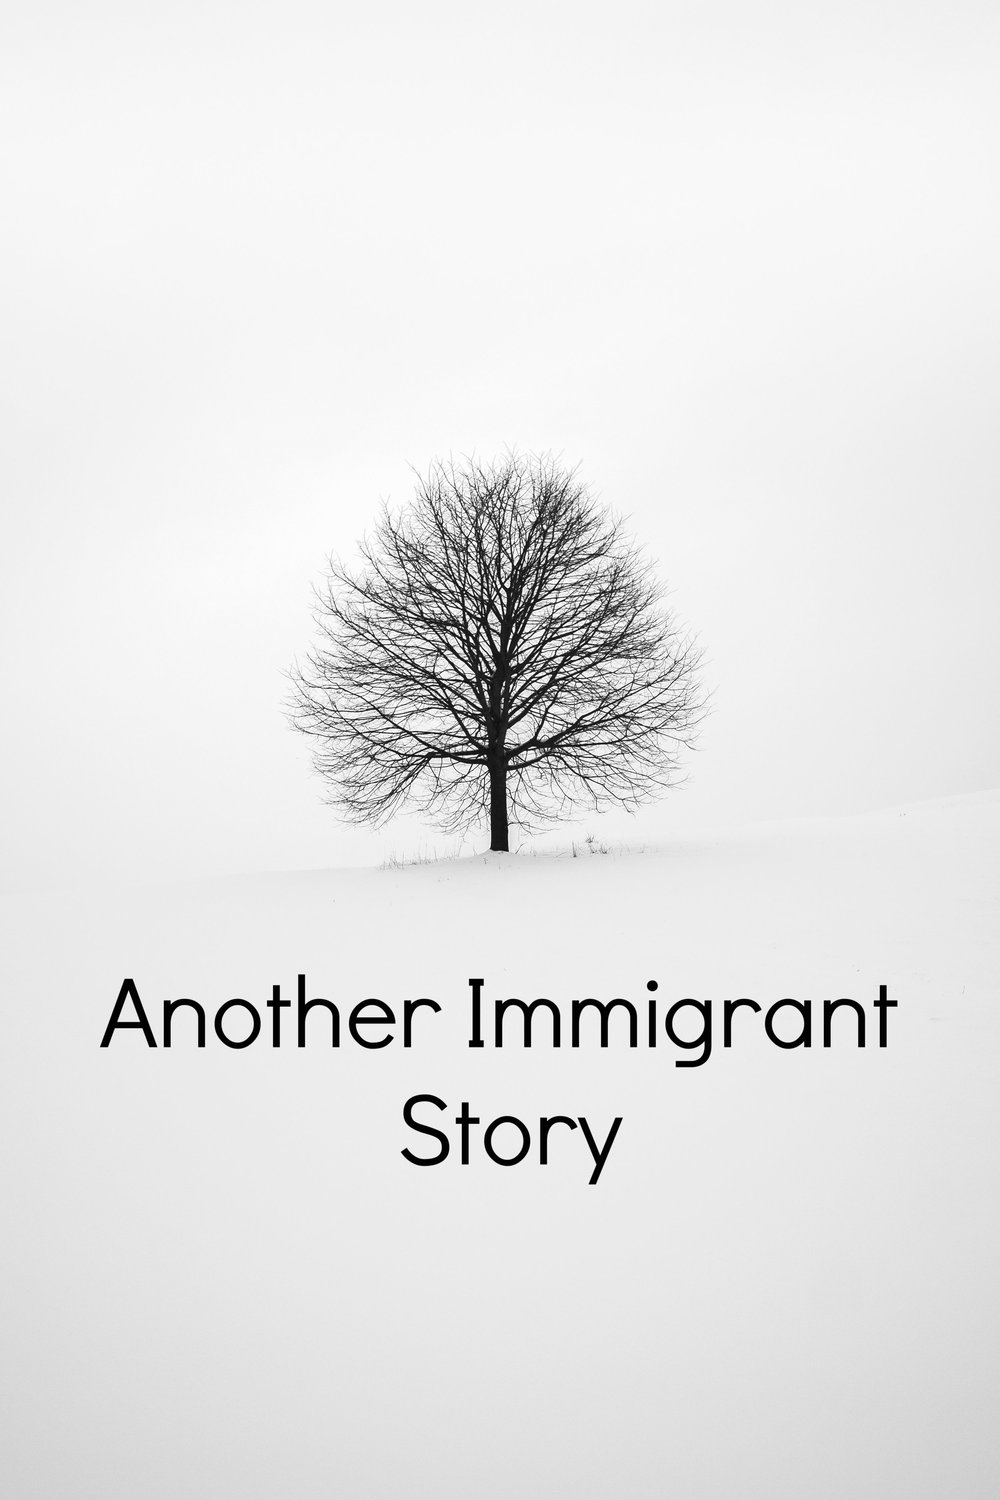 Another Immigrant Story